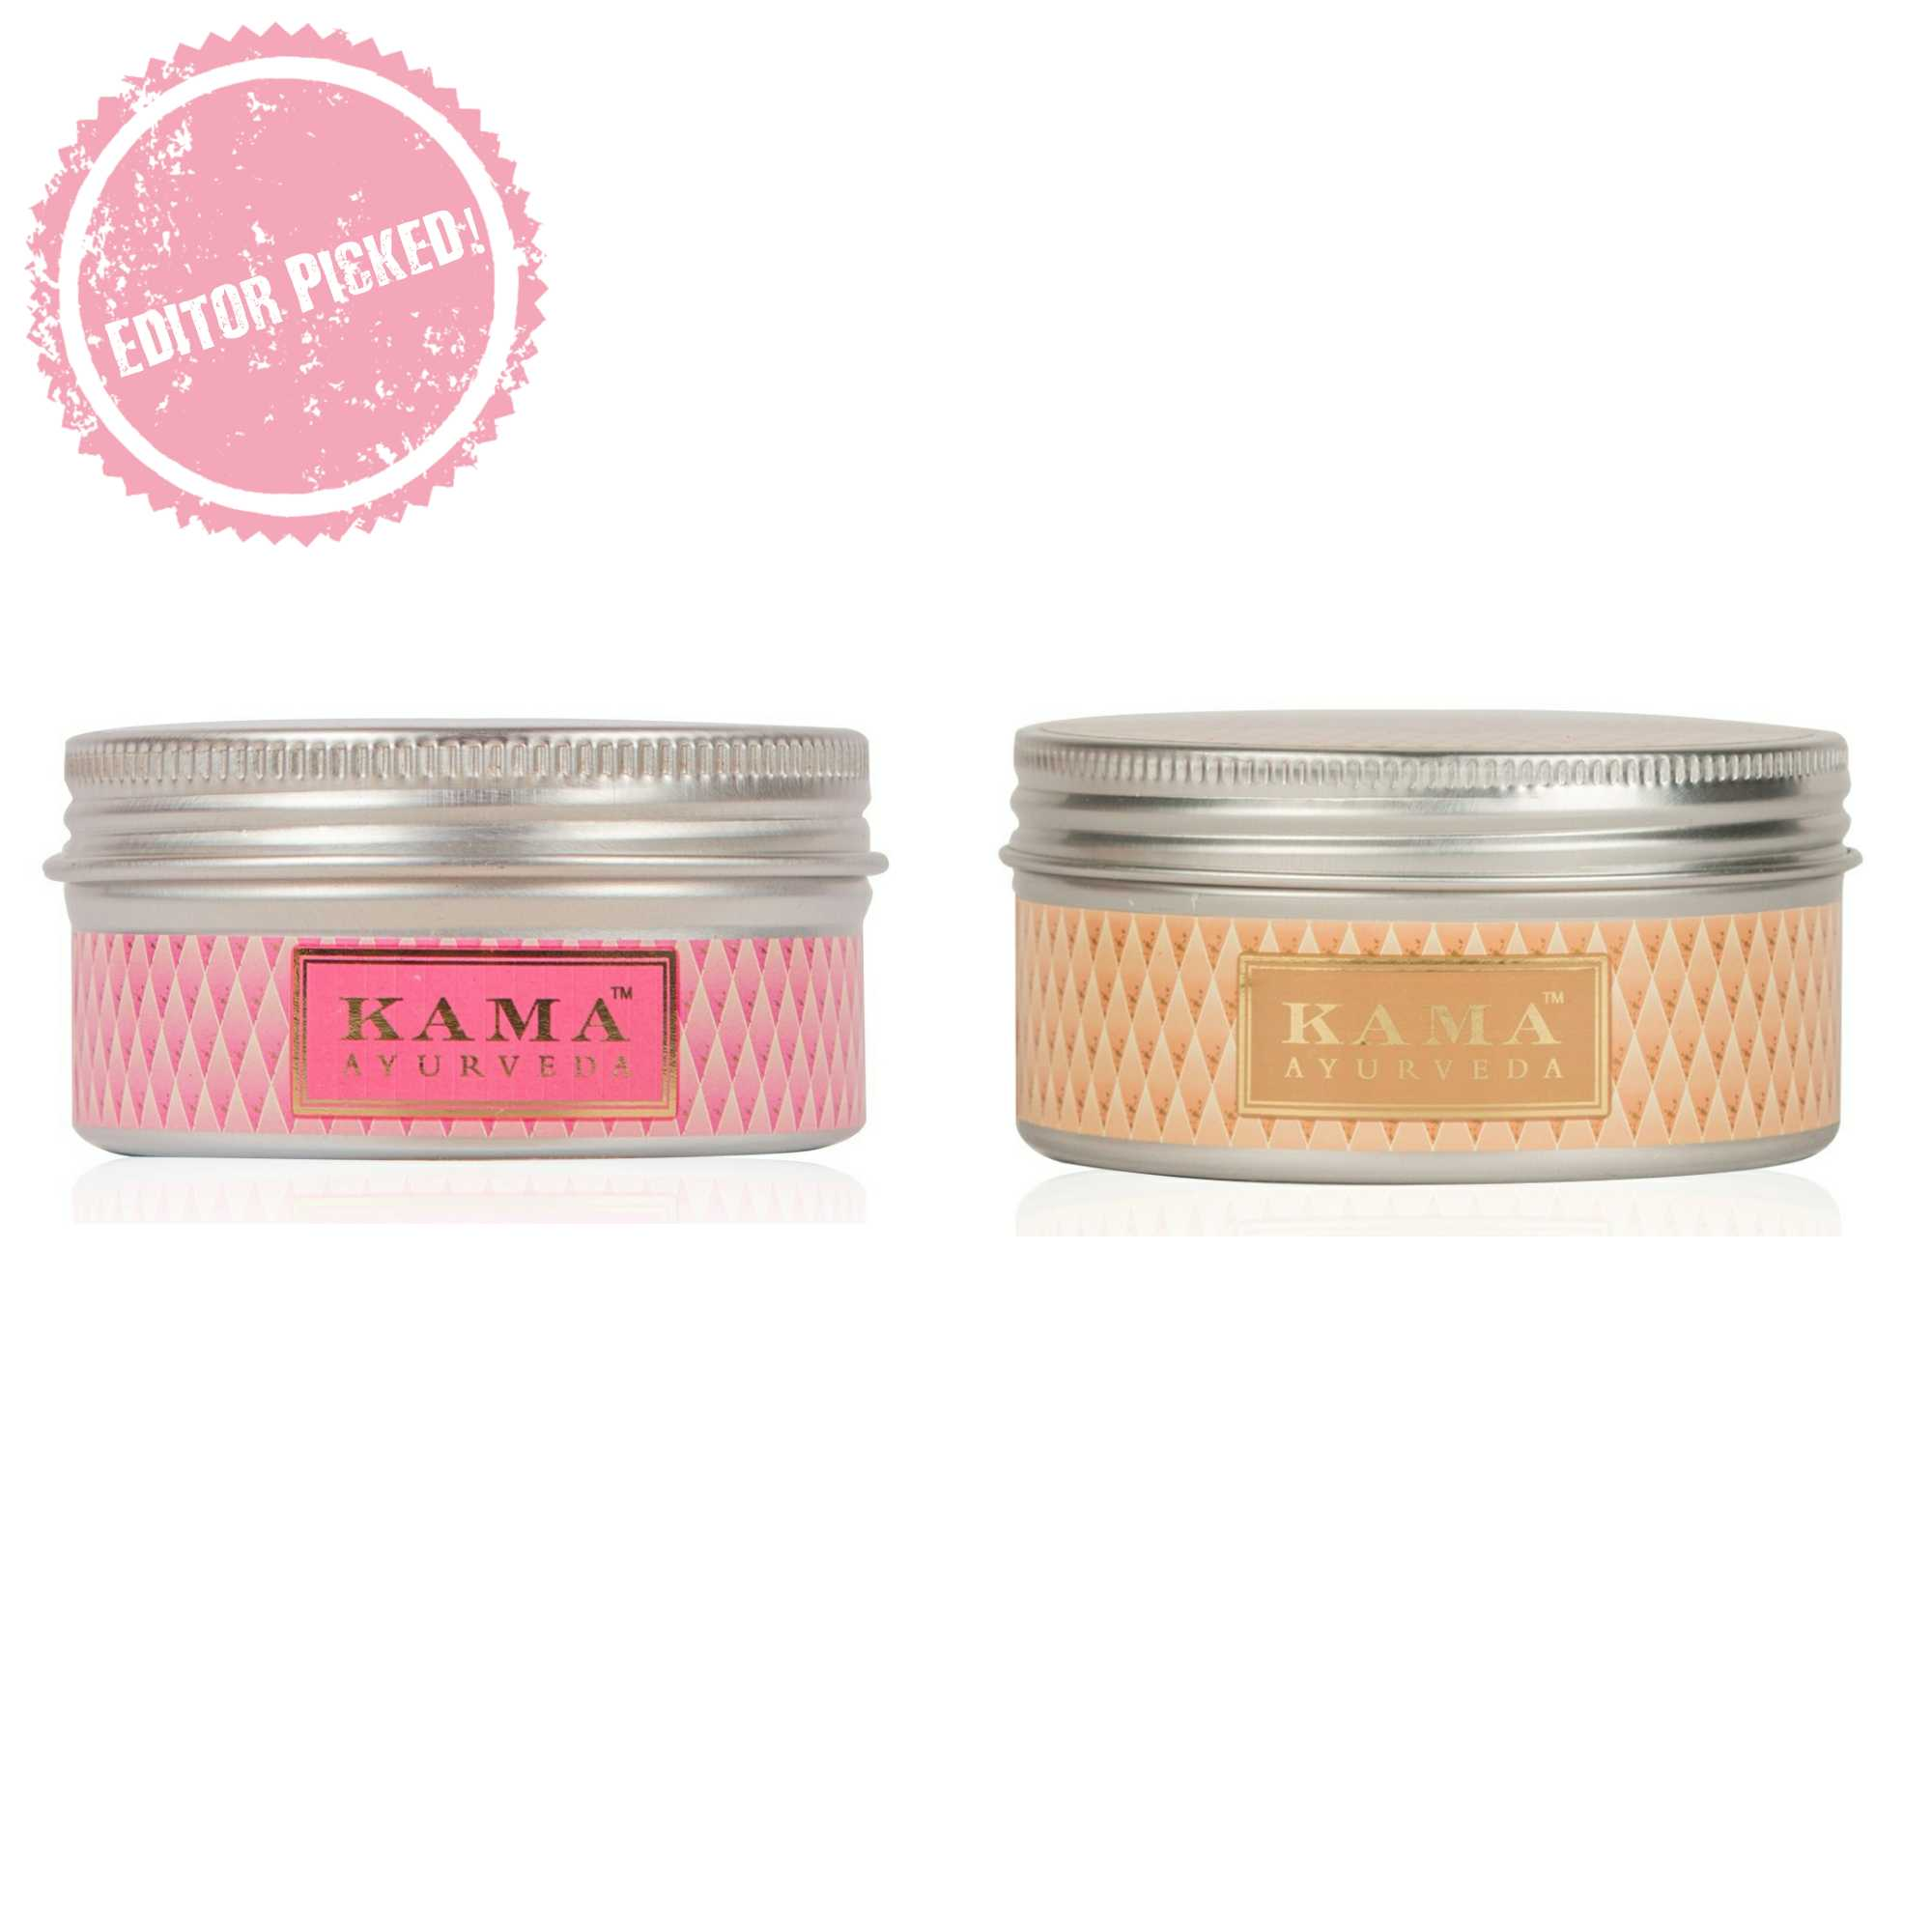 Kama Ayurveda Body Butters - luxurious natural body butter in India